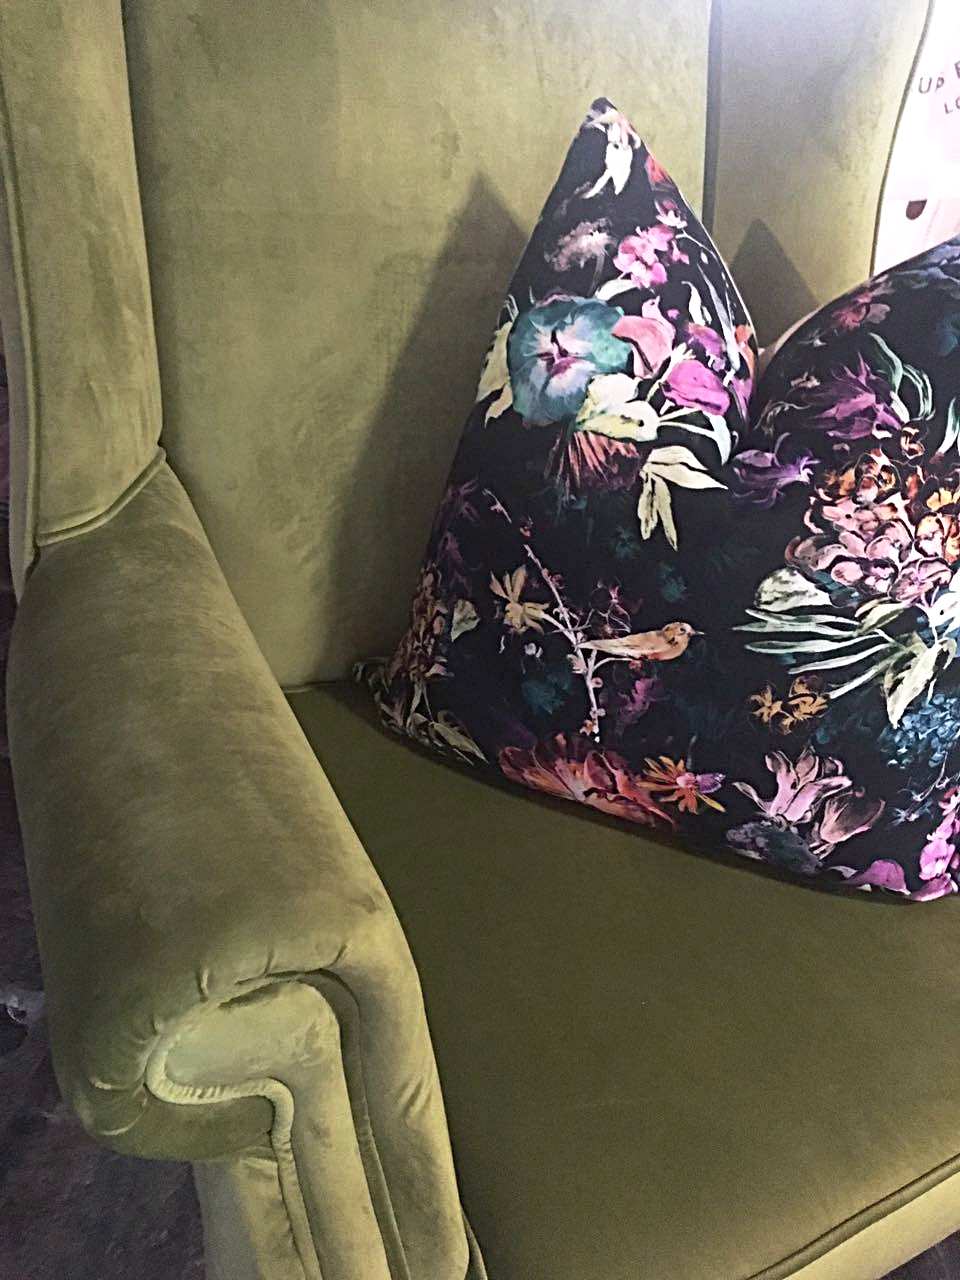 Green velvet wingback chair with tropical floral scatter cushion.